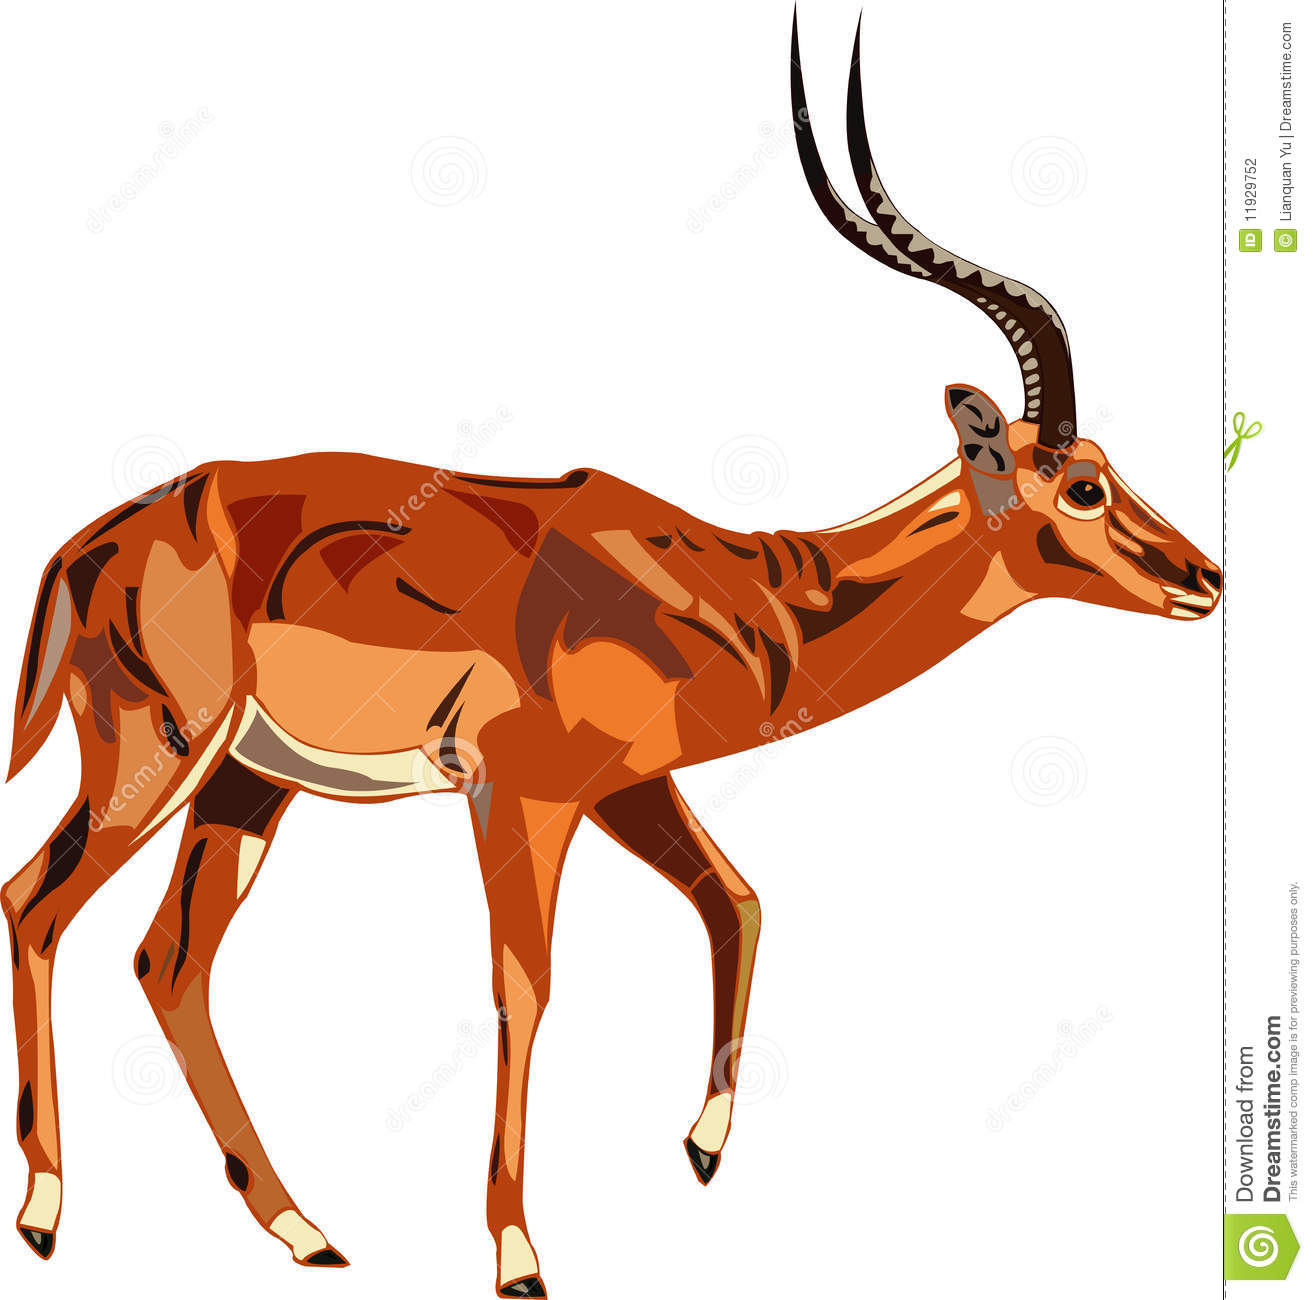 Antelope Series Impala. Stock Vector. Illustration Of